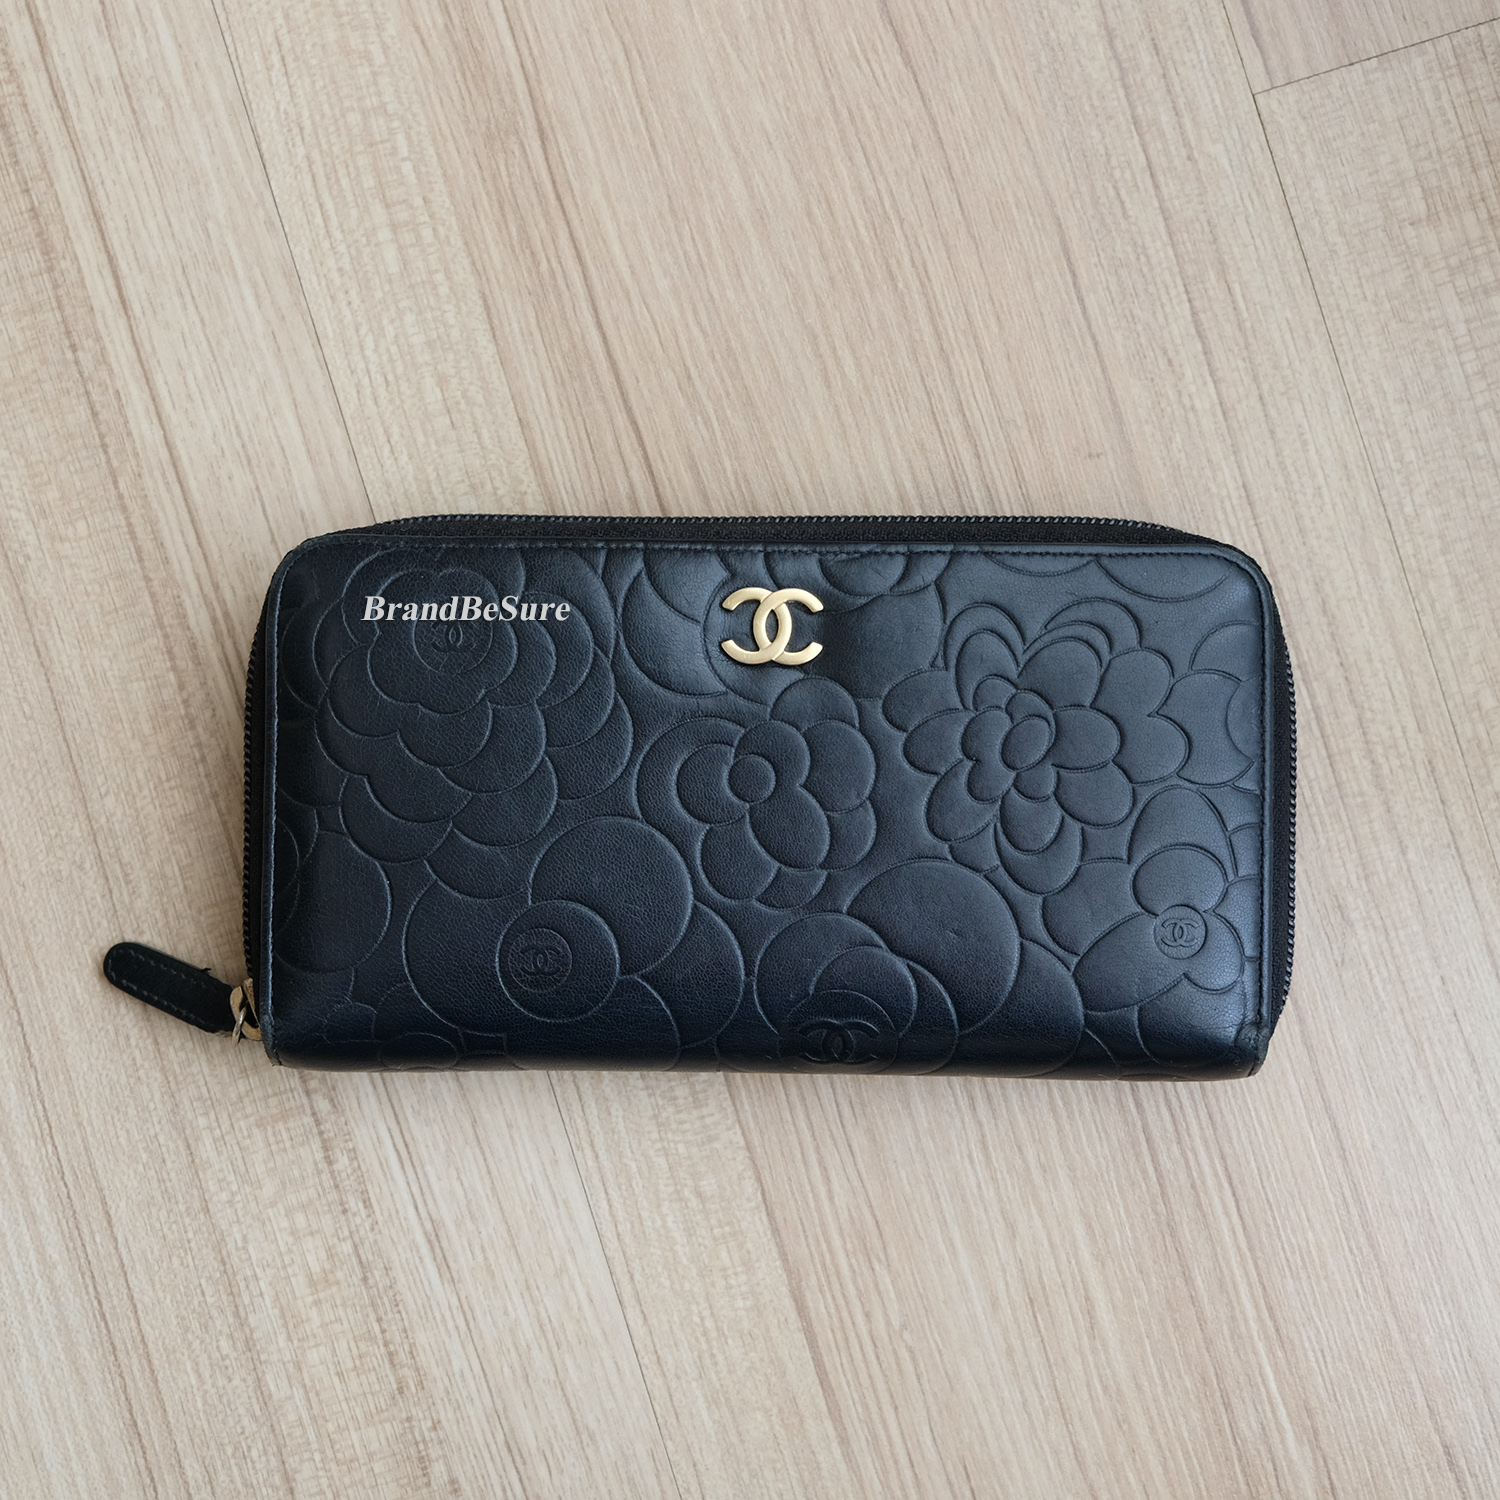 057761ea Chanel Black Camellia Lambskin Zip Around Wallet GHW